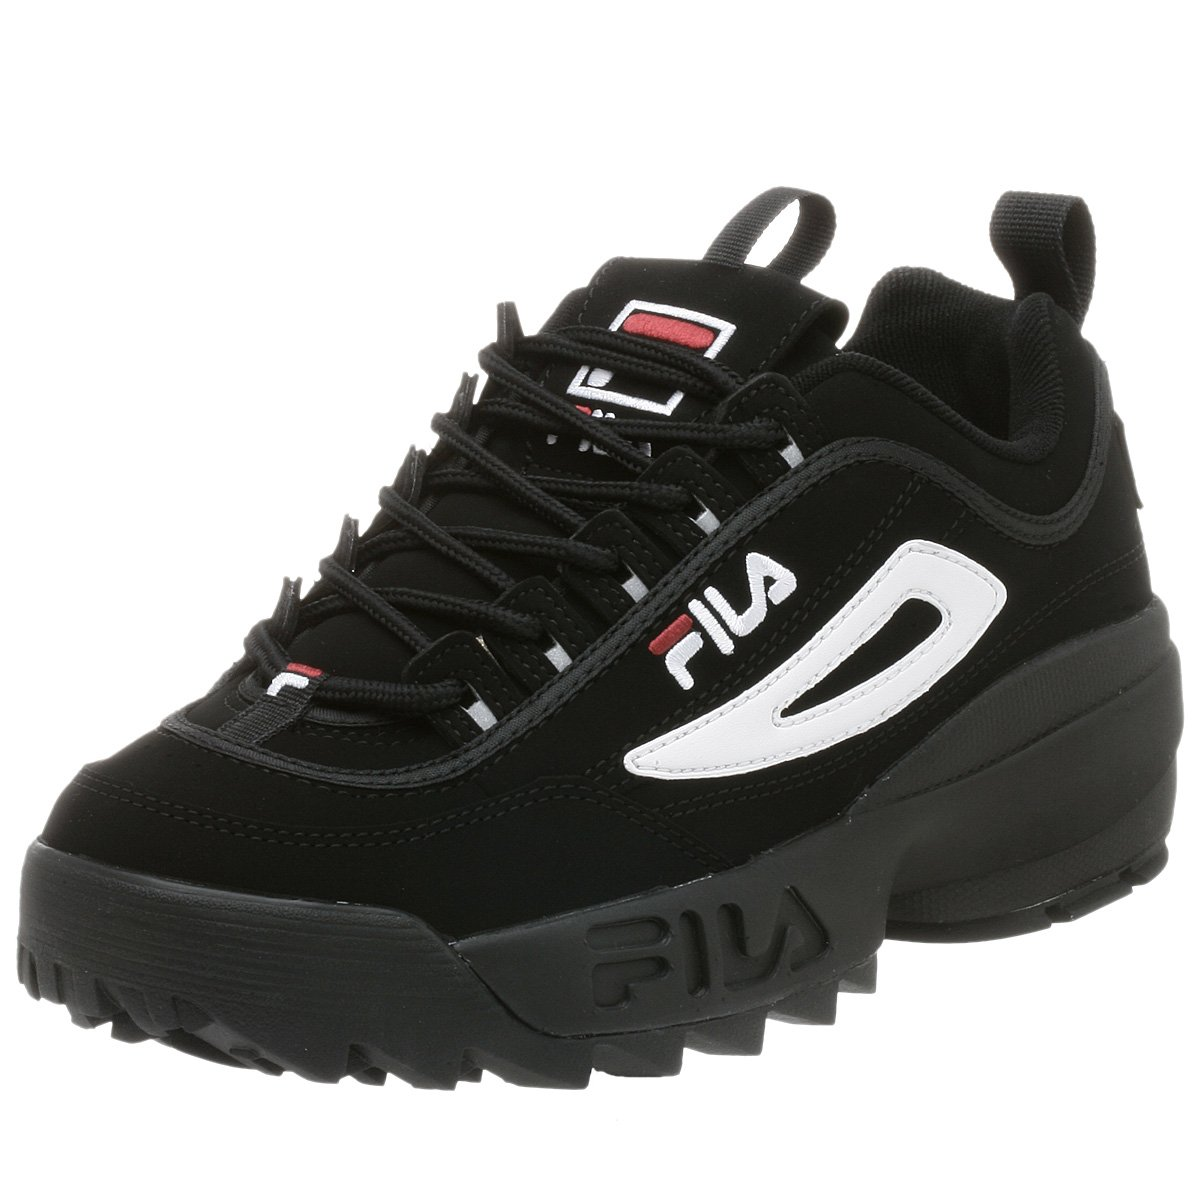 2988fe4cf5ad Galleon - Fila Men s Strada Disruptor